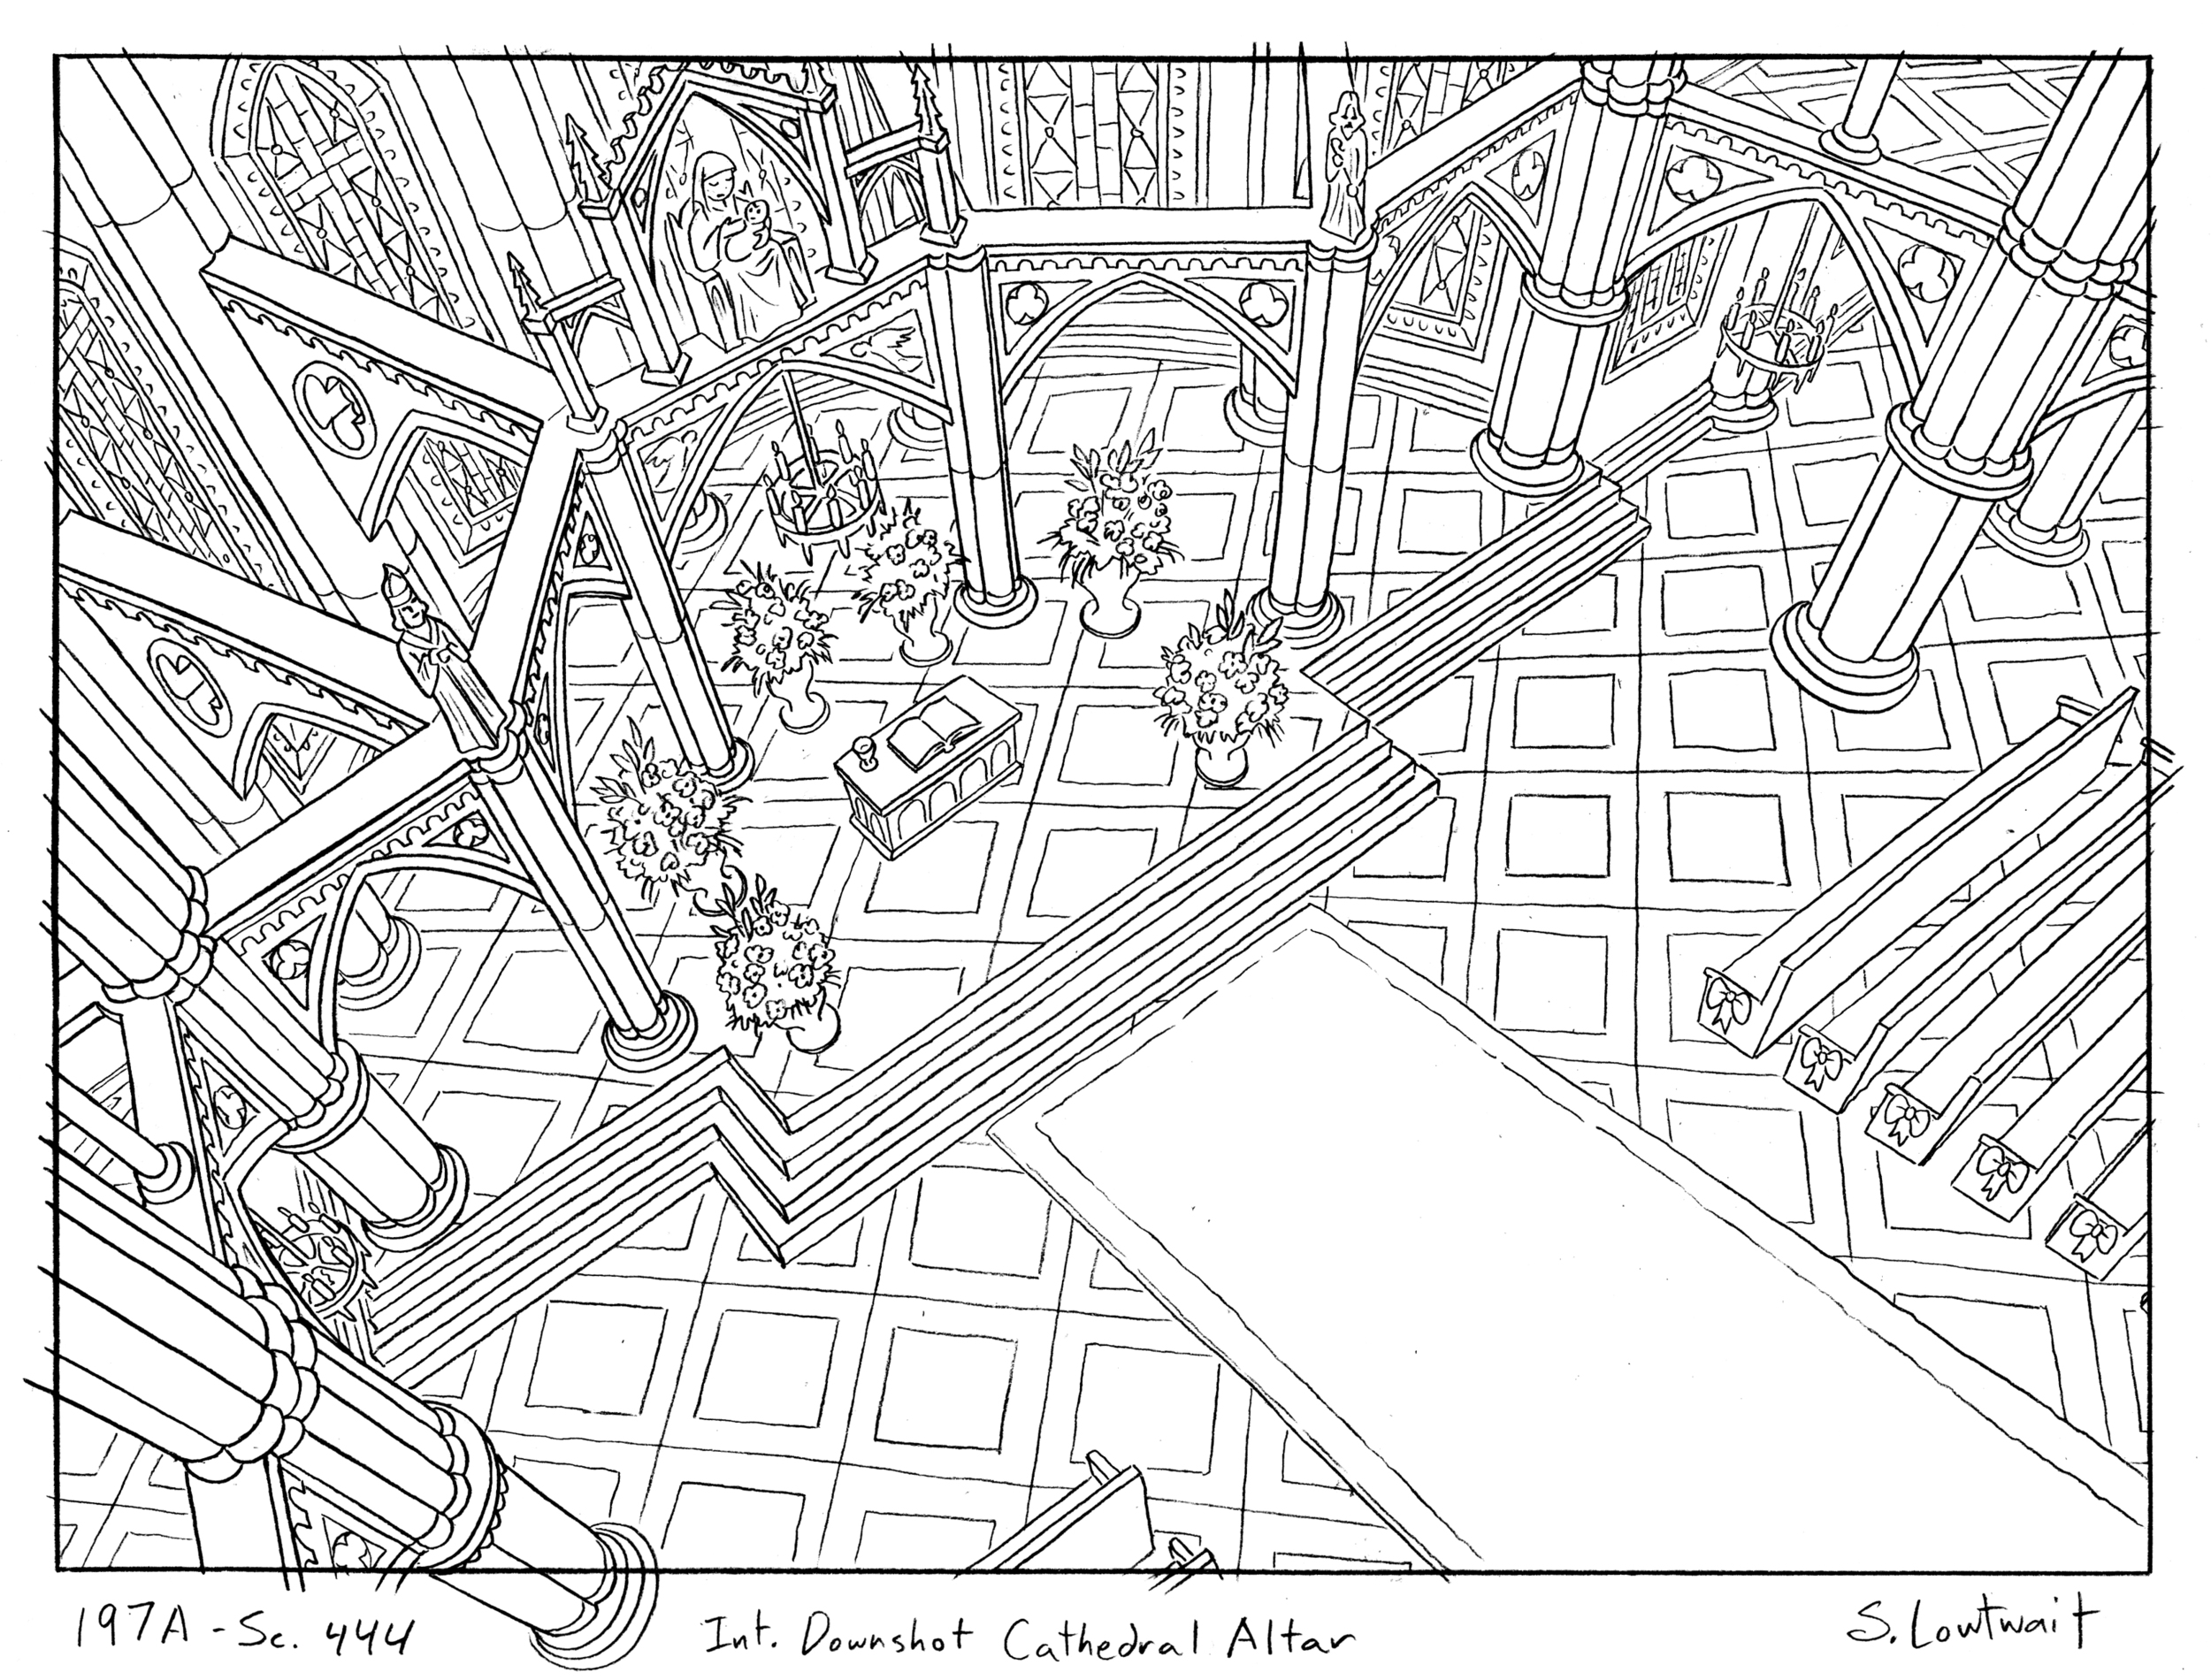 Architecturally complex perspective and pattern. Arnold and Helga got married here in one of her fantasies.